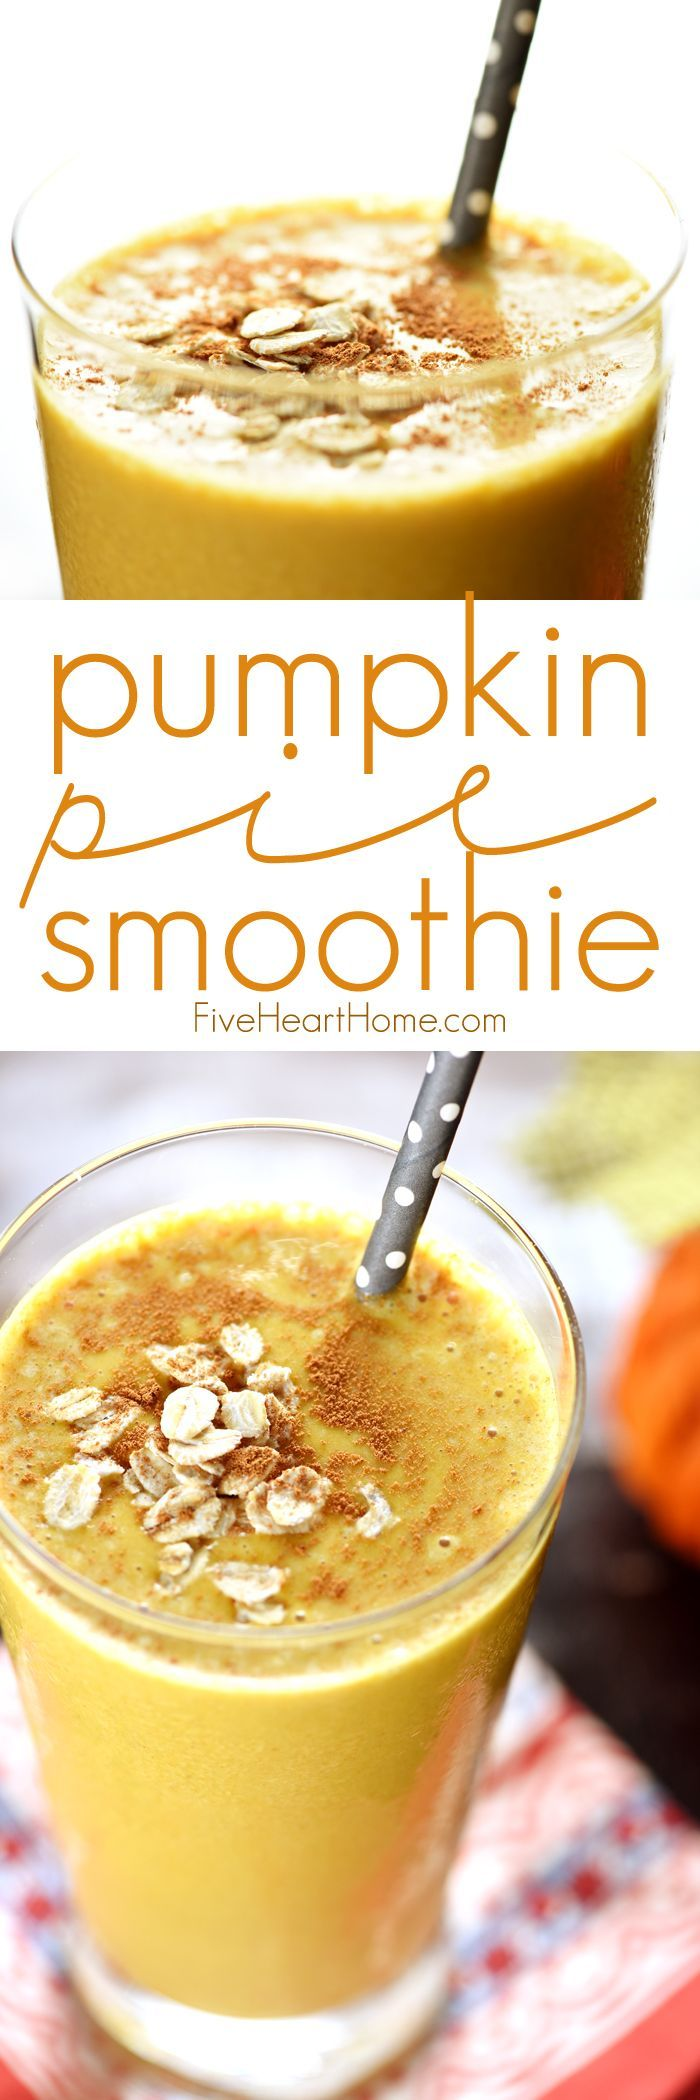 Pumpkin Pie Smoothie ~ a fall twist on thick, frosty, healthy oat smoothies...cinnamon-spiced, honey-sweetened, and perfect for breakfast or as a snack! | FiveHeartHome.com